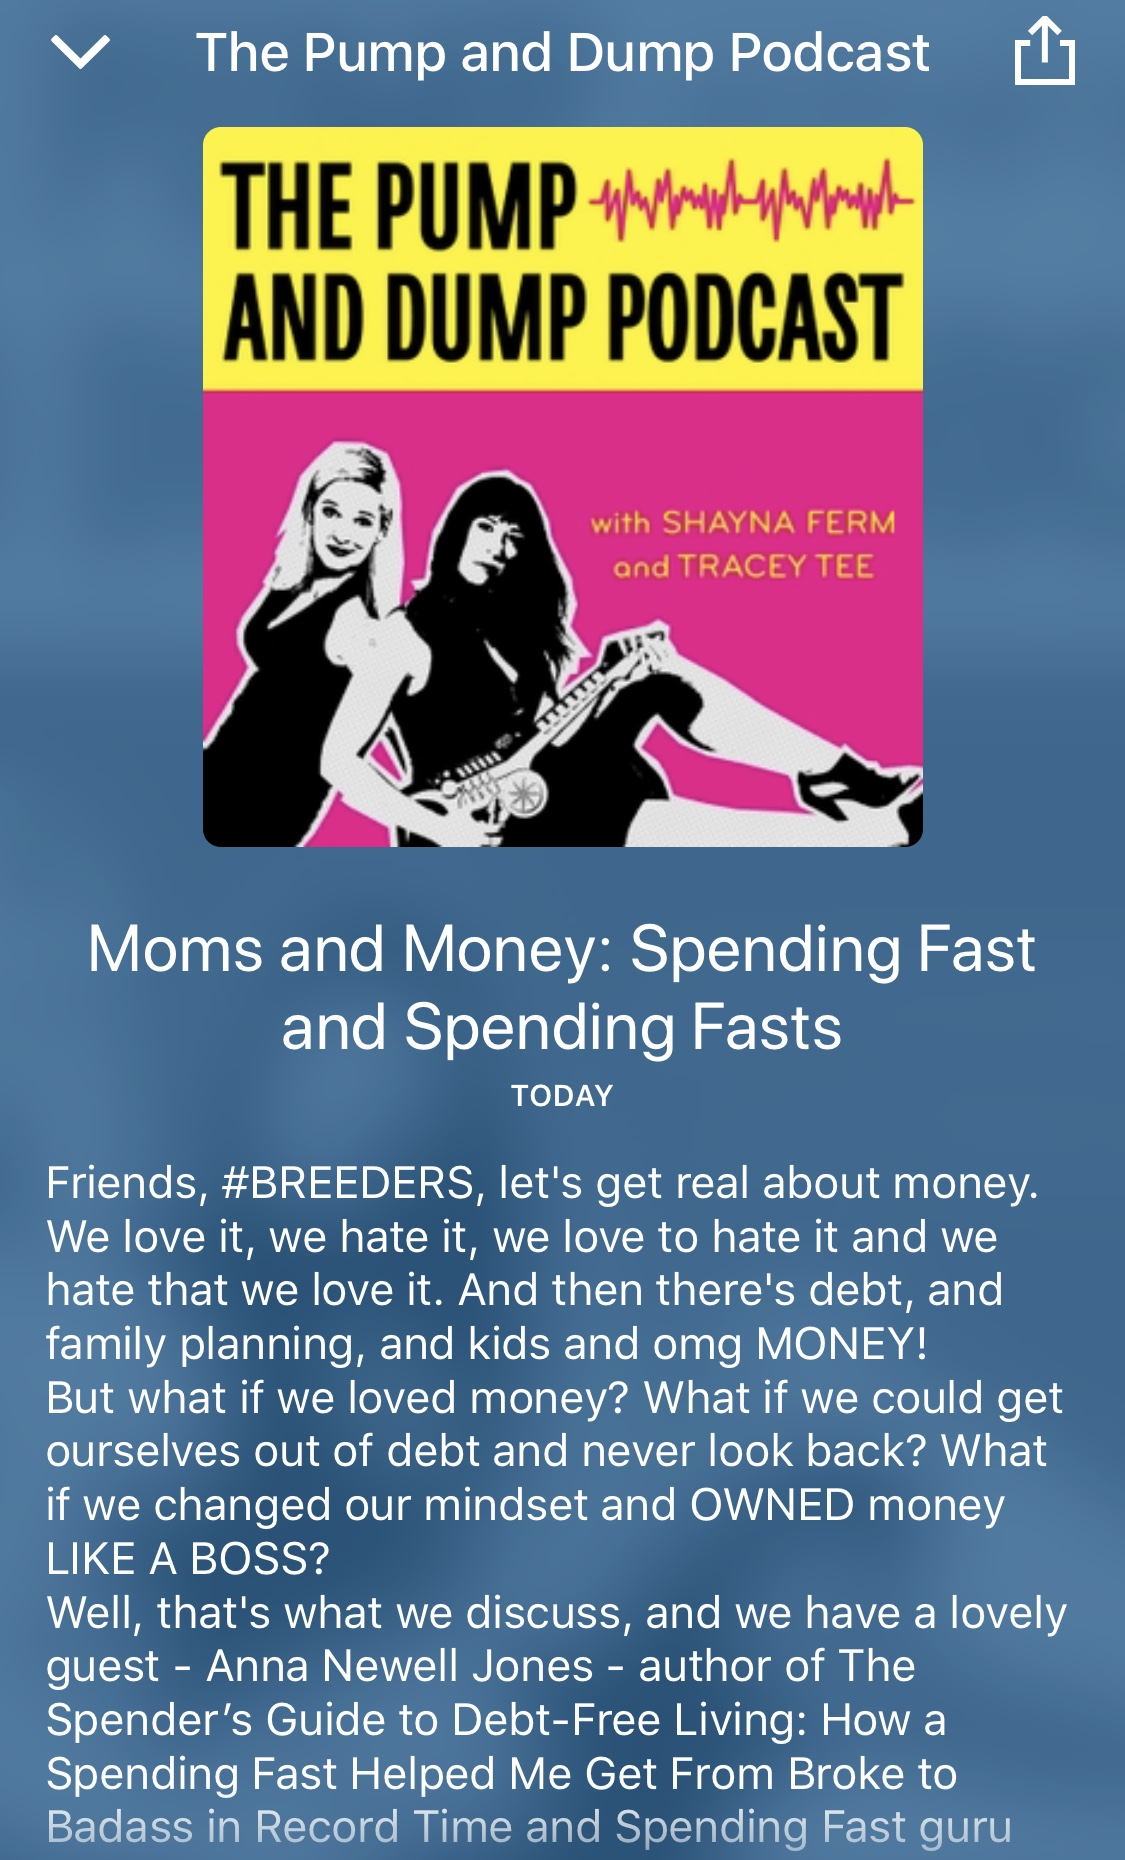 Pump and Dump Podcast: Moms and Money Spending Fast and Spending Fasts